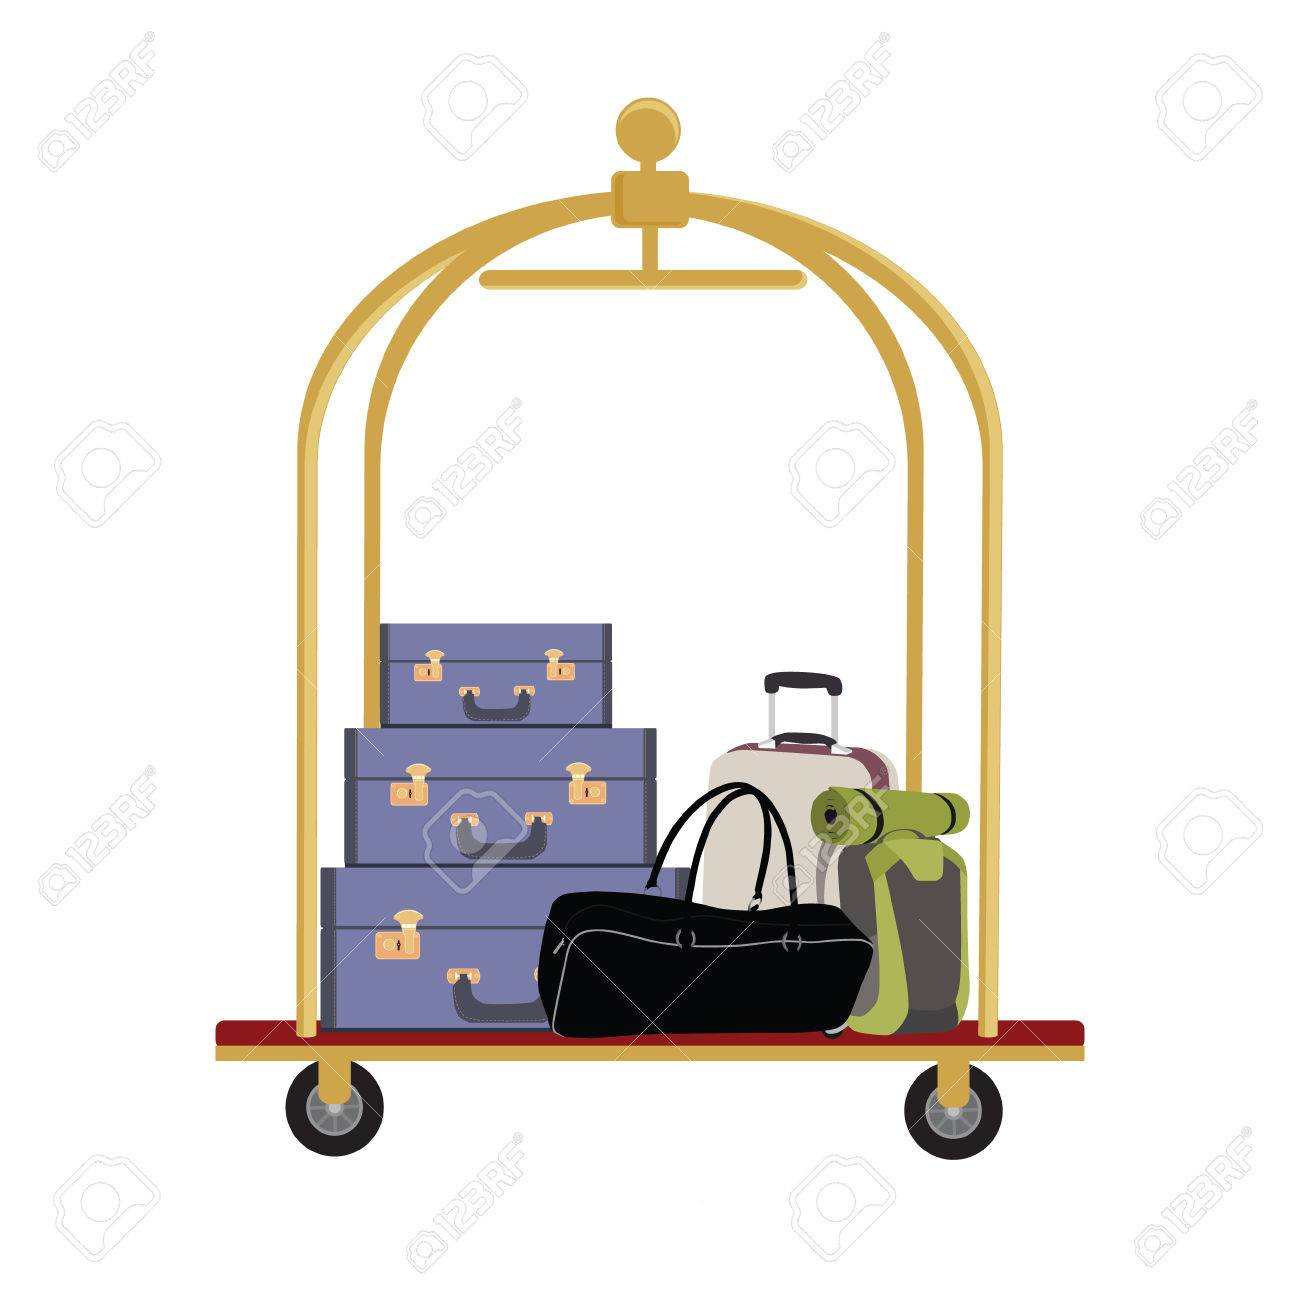 Vector illustration of hotel luggage cart with luggage, briefcase, backpack and bag. Luggage trolley - 45910518